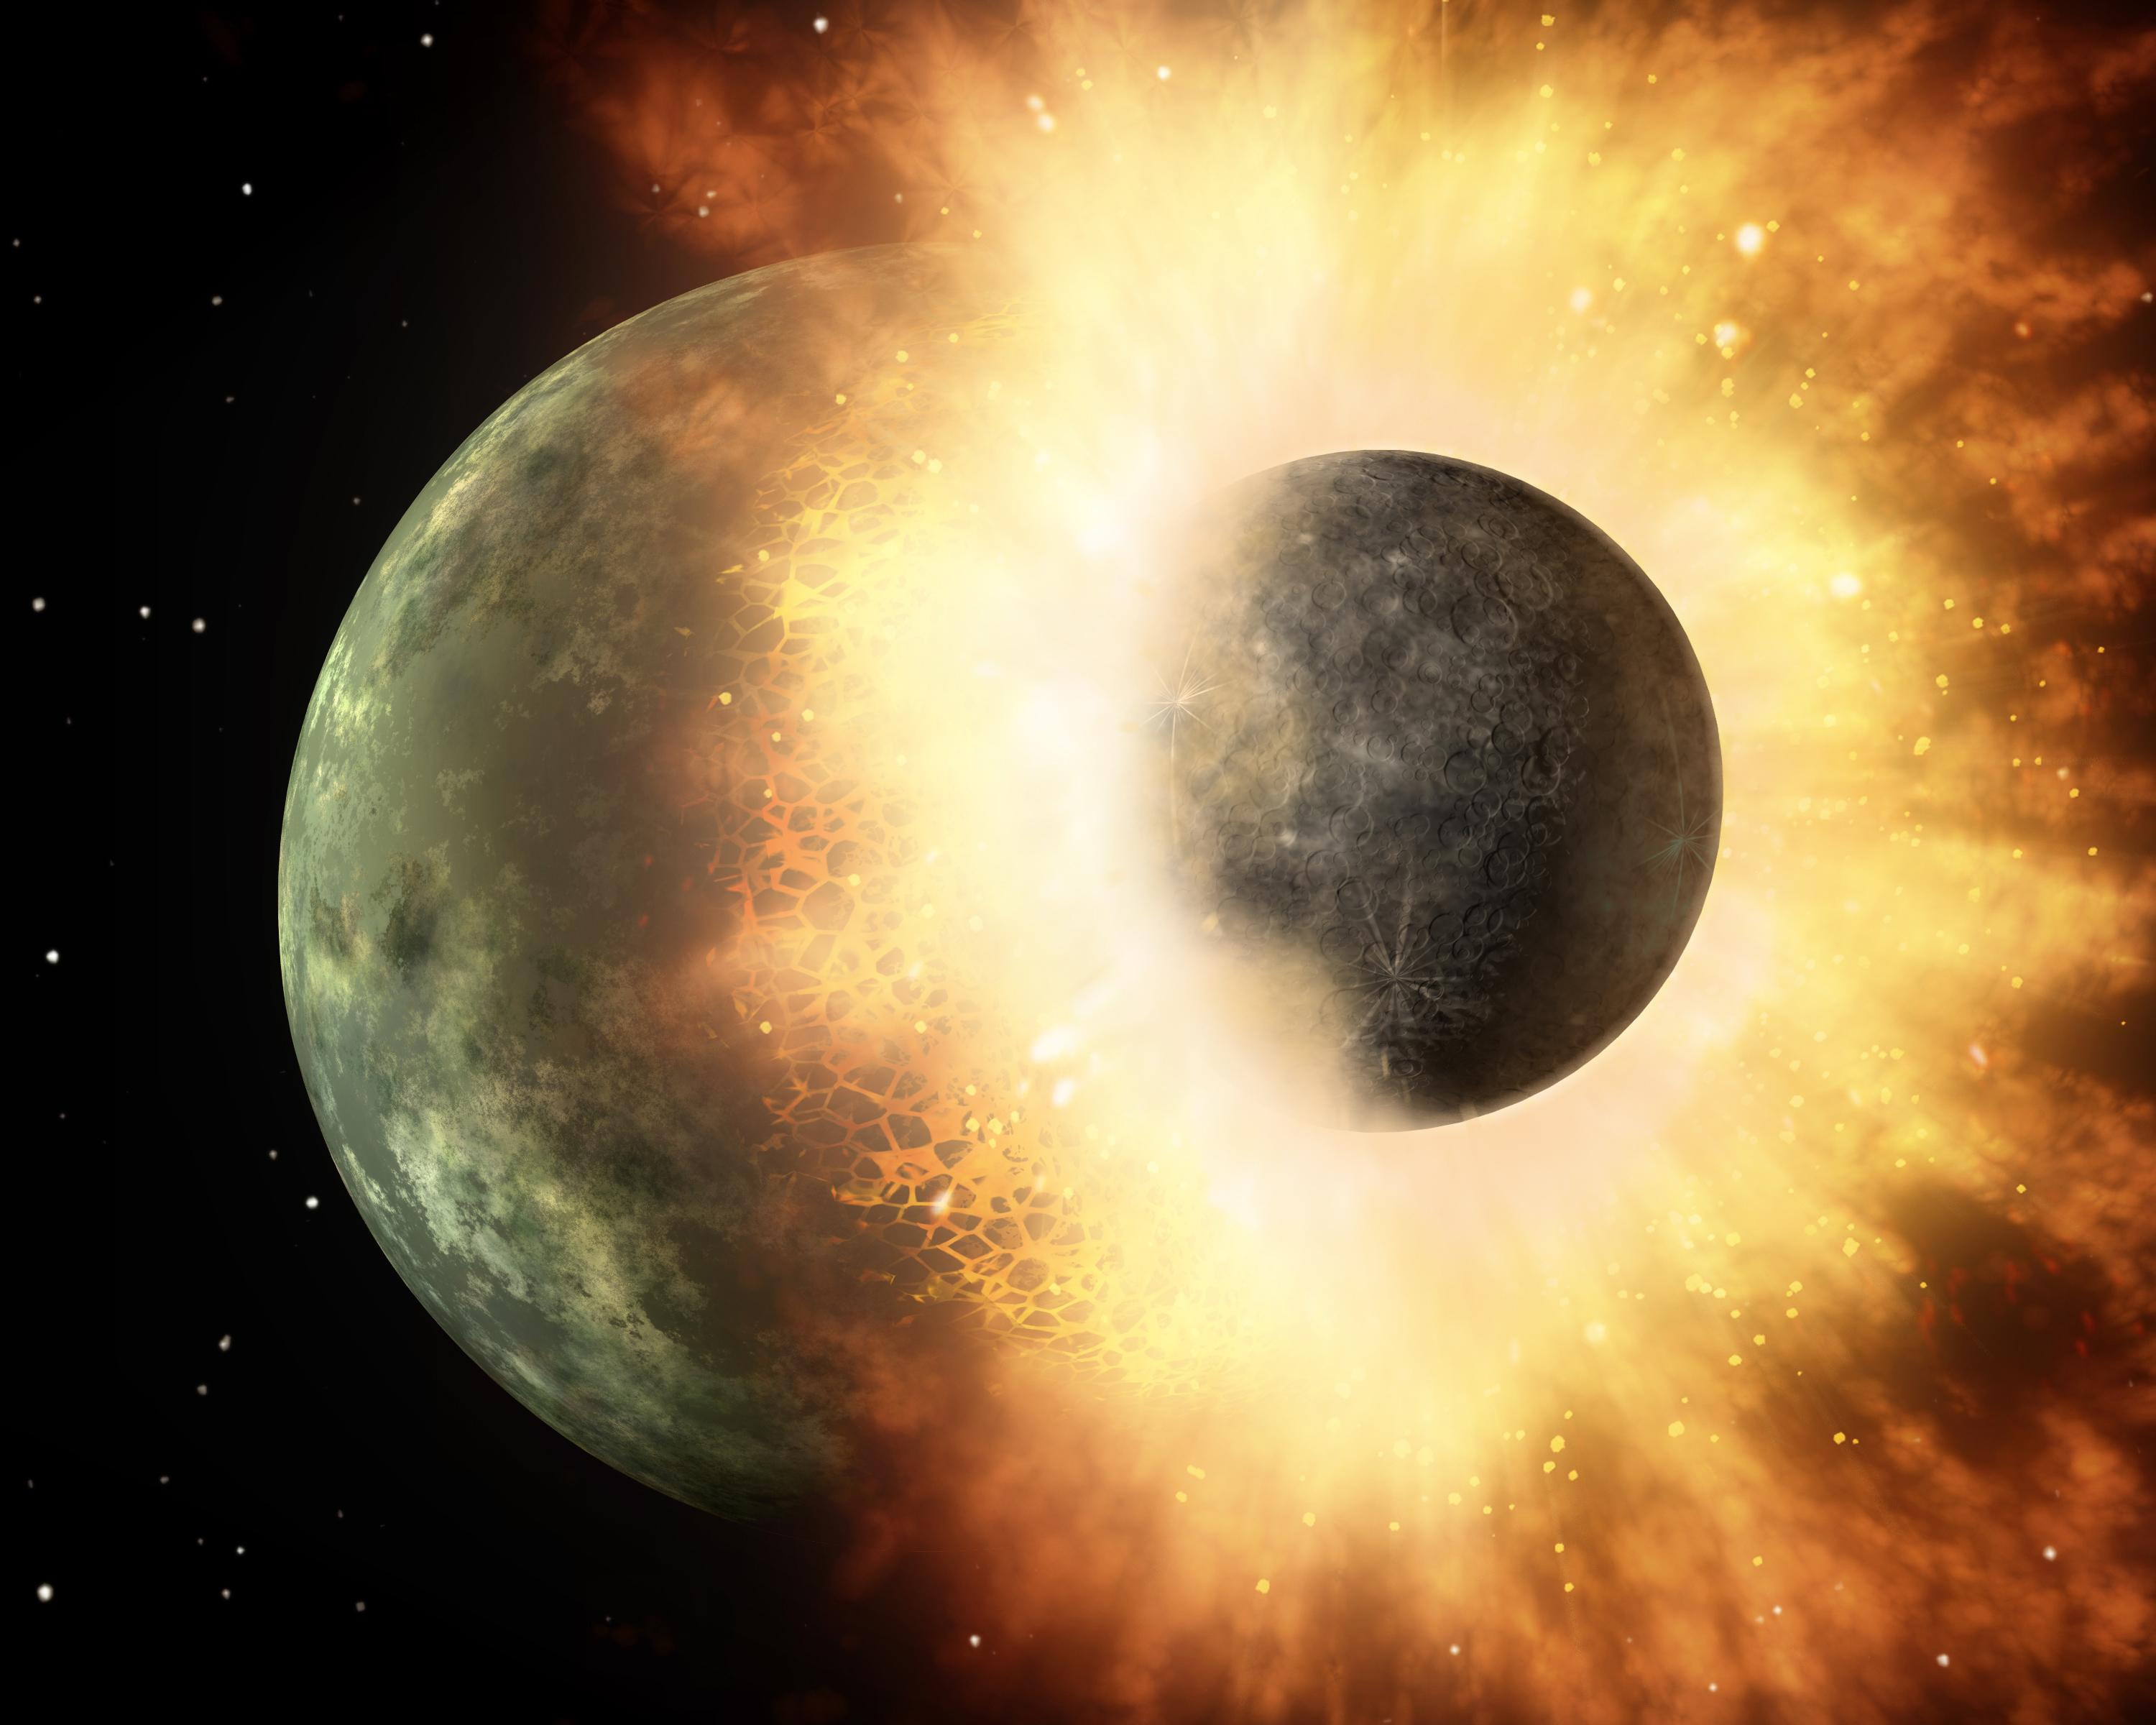 This artist's concept shows a celestial body about the size of our moon slamming at great speed into... [+] a body the size of Mercury. NASA's Spitzer Space Telescope found evidence that a high-speed collision of this sort occurred a few thousand years ago around a young star, called HD 172555, still in the early stages of planet formation. The star is about 100 light-years from Earth. Image Credit: NASA/JPL-Caltech